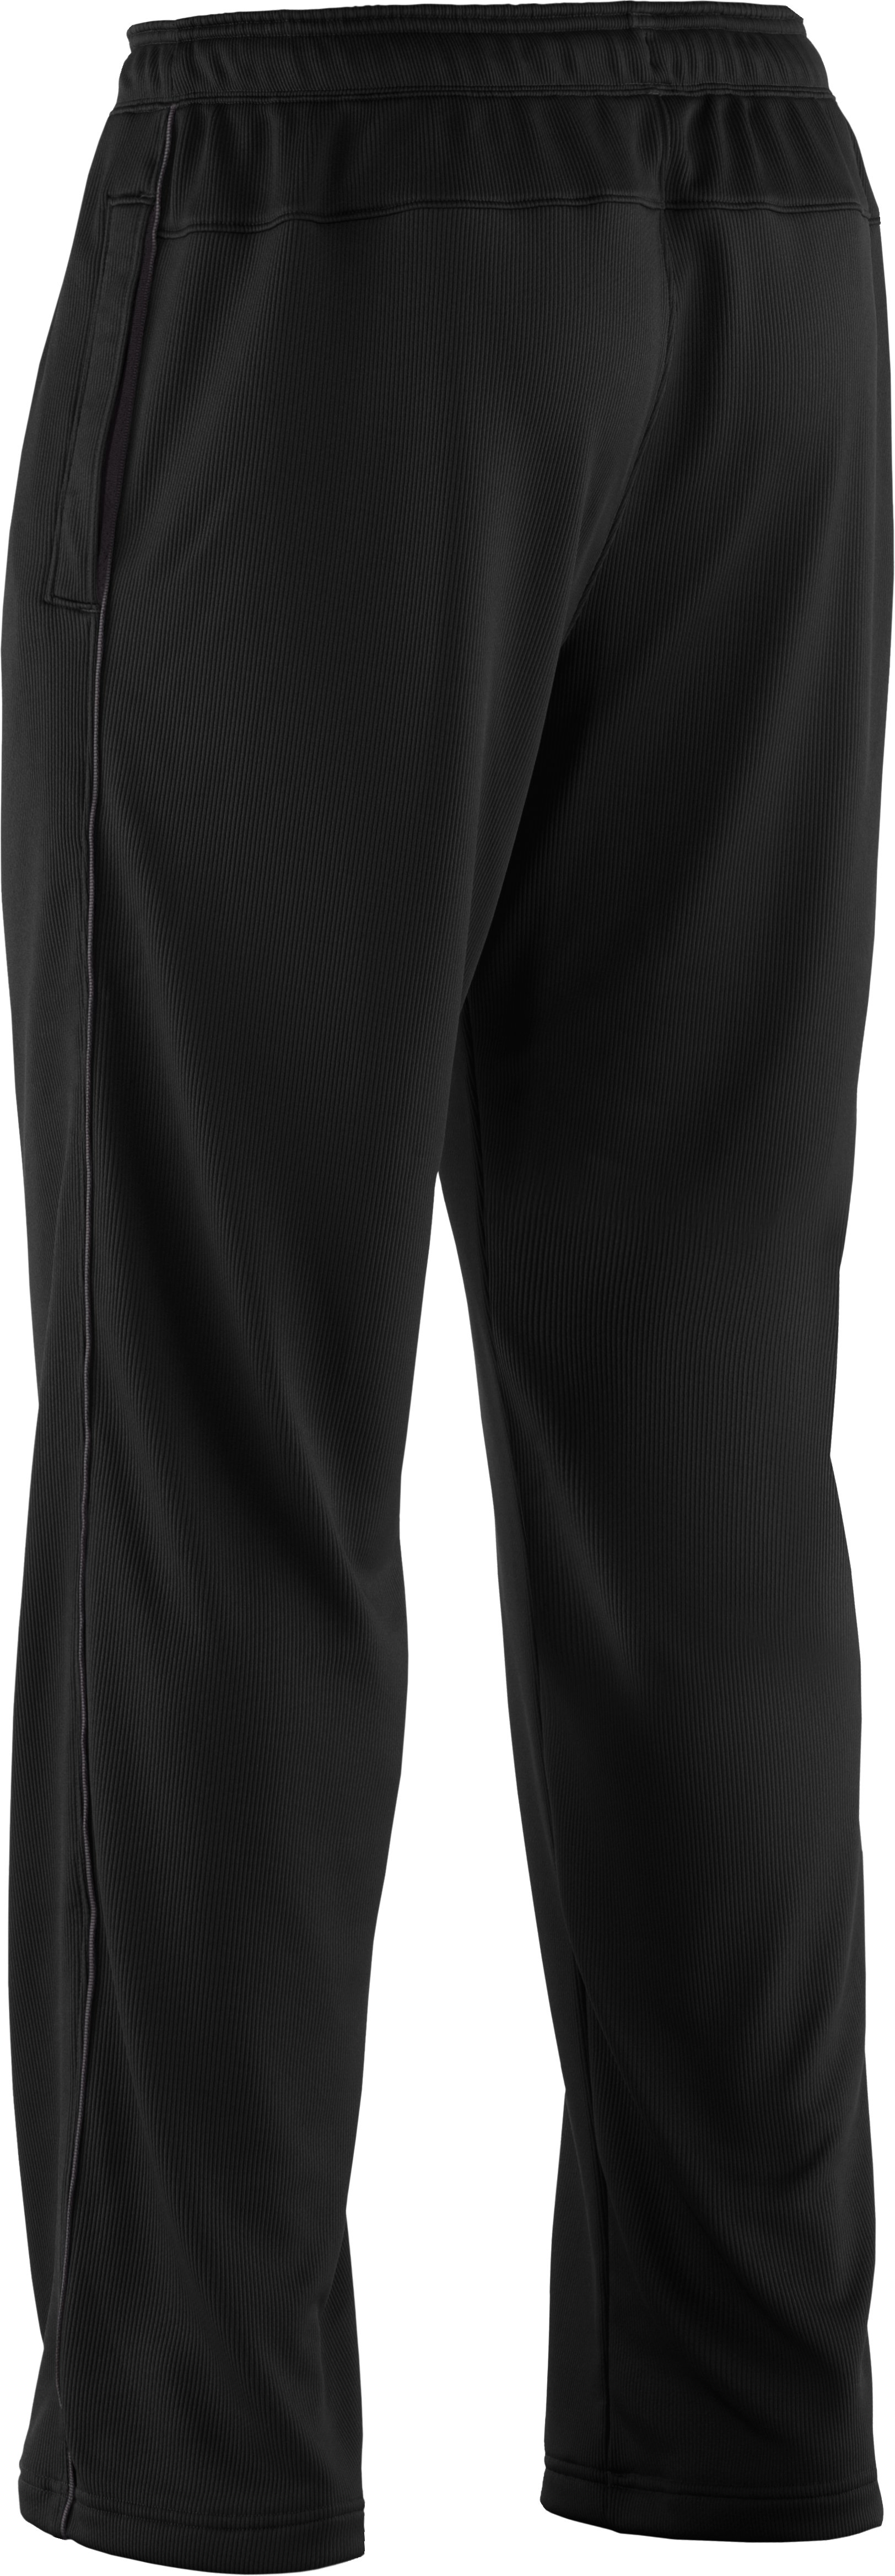 Men's UA Motion Warm-Up Pants, Black